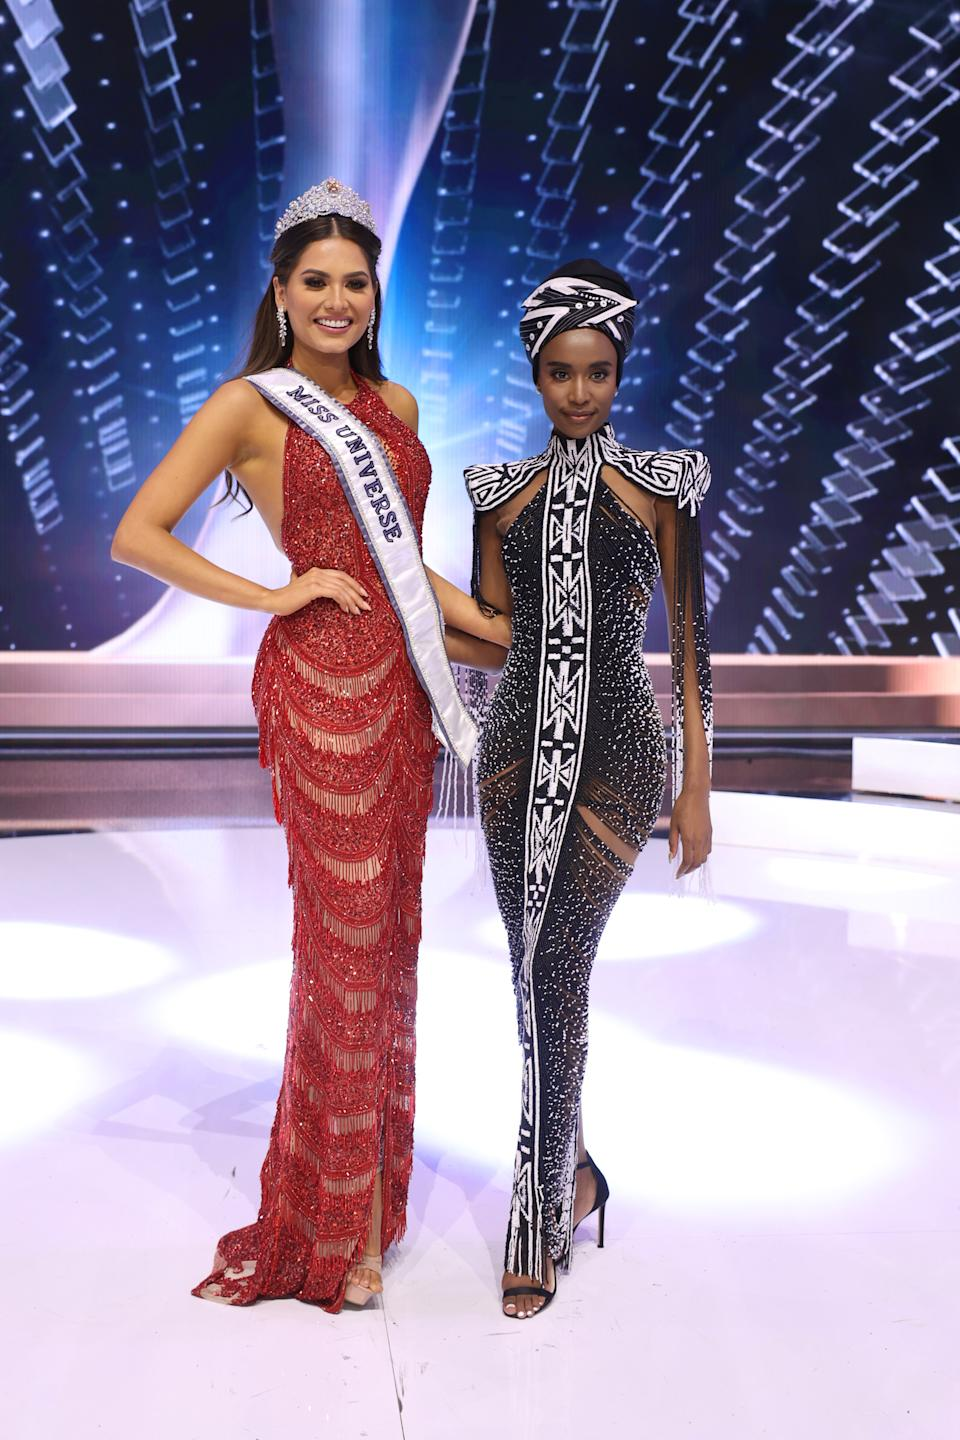 HOLLYWOOD, FLORIDA - MAY 16: Miss Universe 2020 Andrea Meza and Miss Universe 2019 Zozibini Tunzi pose onstage at the 69th Miss Universe competition at Seminole Hard Rock Hotel & Casino on May 16, 2021 in Hollywood, Florida. (Photo by Rodrigo Varela/Getty Images)